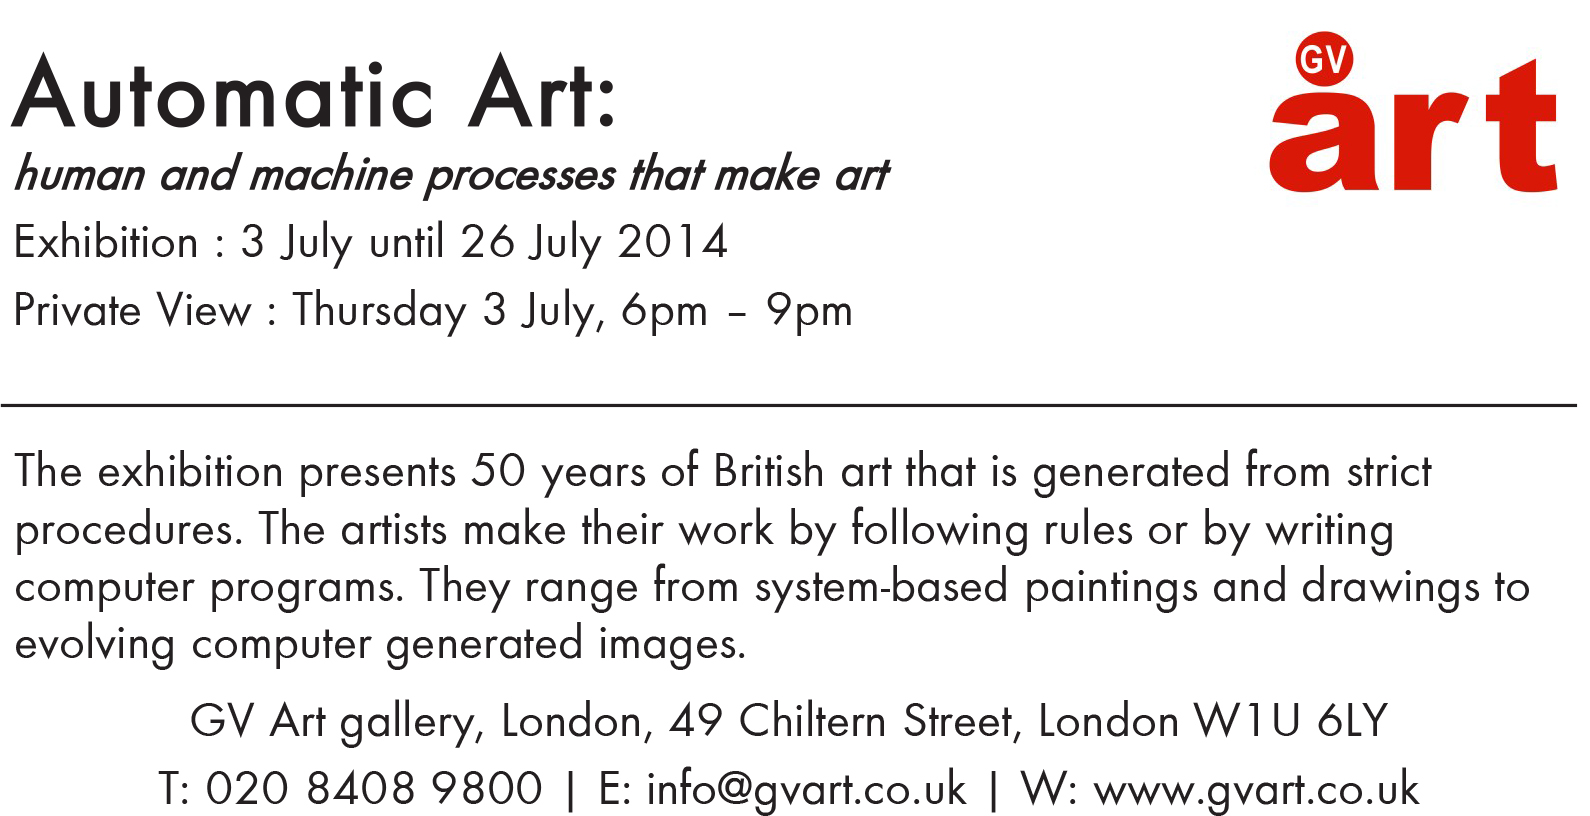 2014 Automatic Art: Human and Machine Processes that make Art   GV art gallery, London, GB